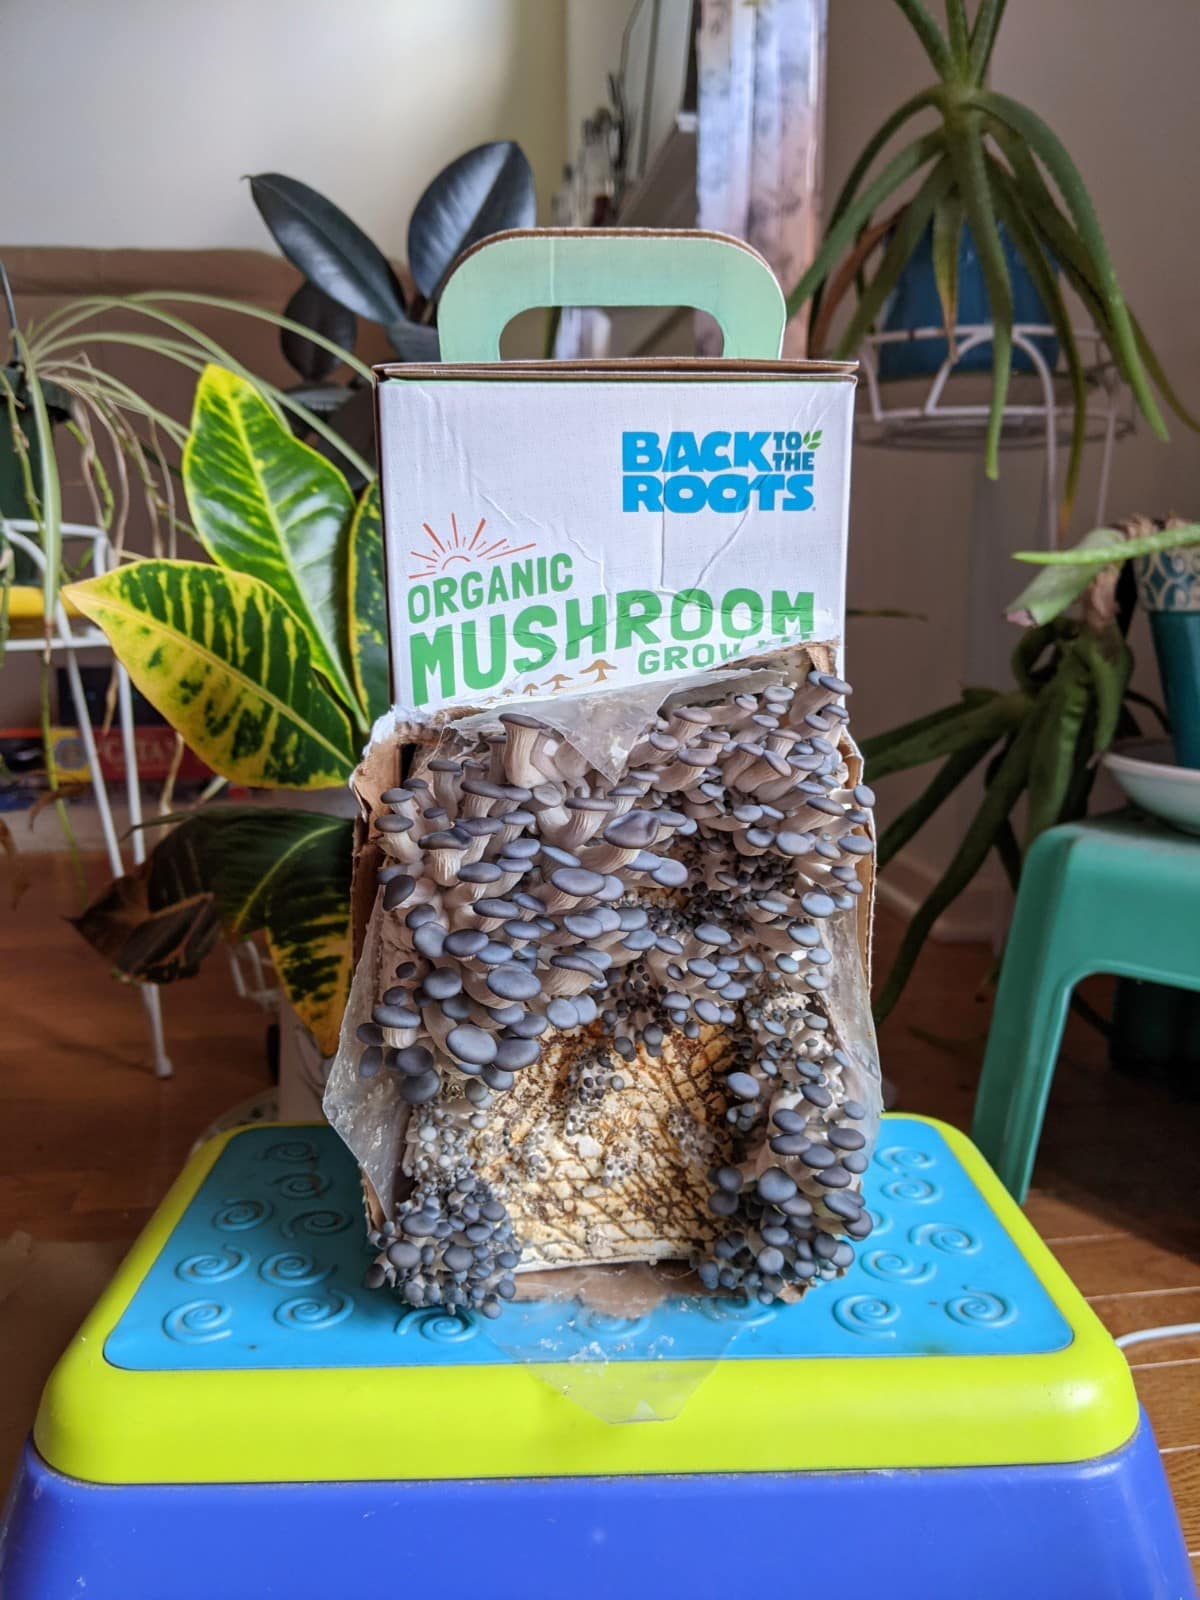 Day 5 of the Back to the Roots oyster mushroom kit